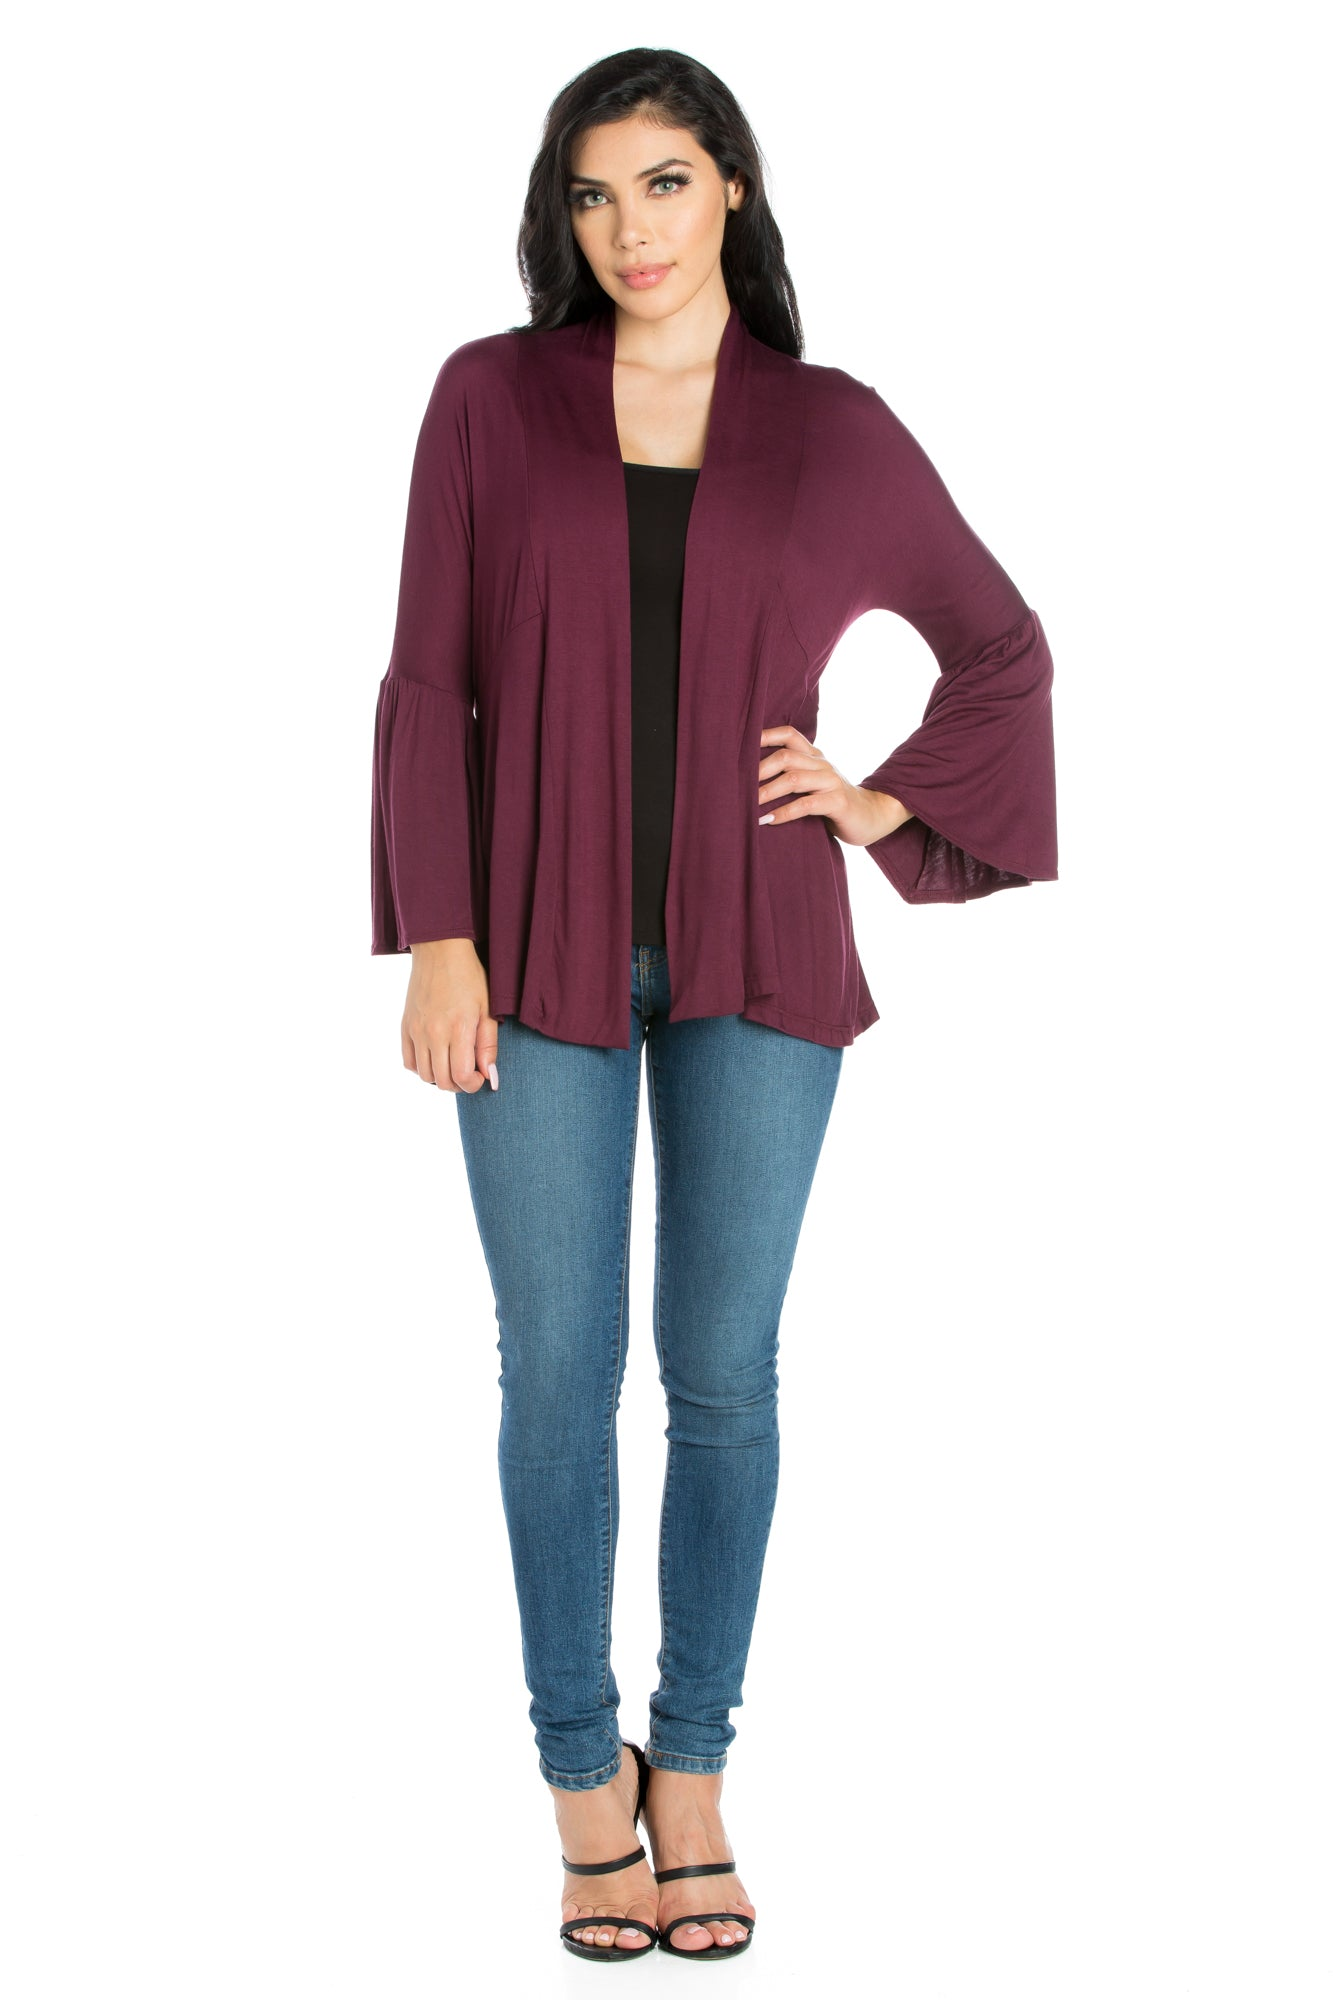 24seven Comfort Apparel Bell Sleeve Flared Open Front Cardigan-SHRUGS-24Seven Comfort Apparel-PLUM-S-24/7 Comfort Apparel